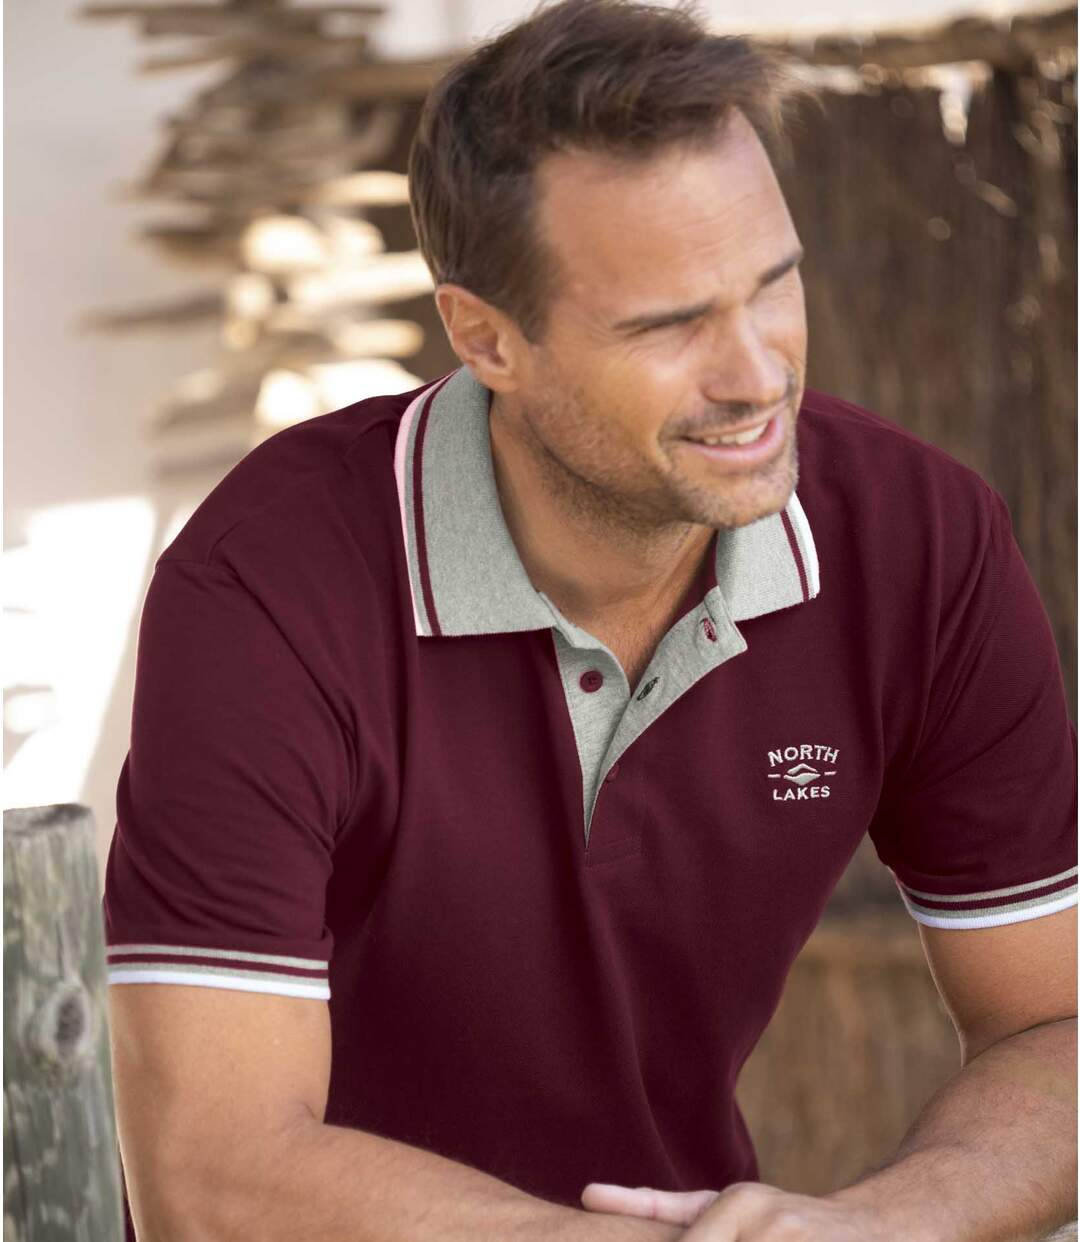 2er-Pack Poloshirts North Lakes